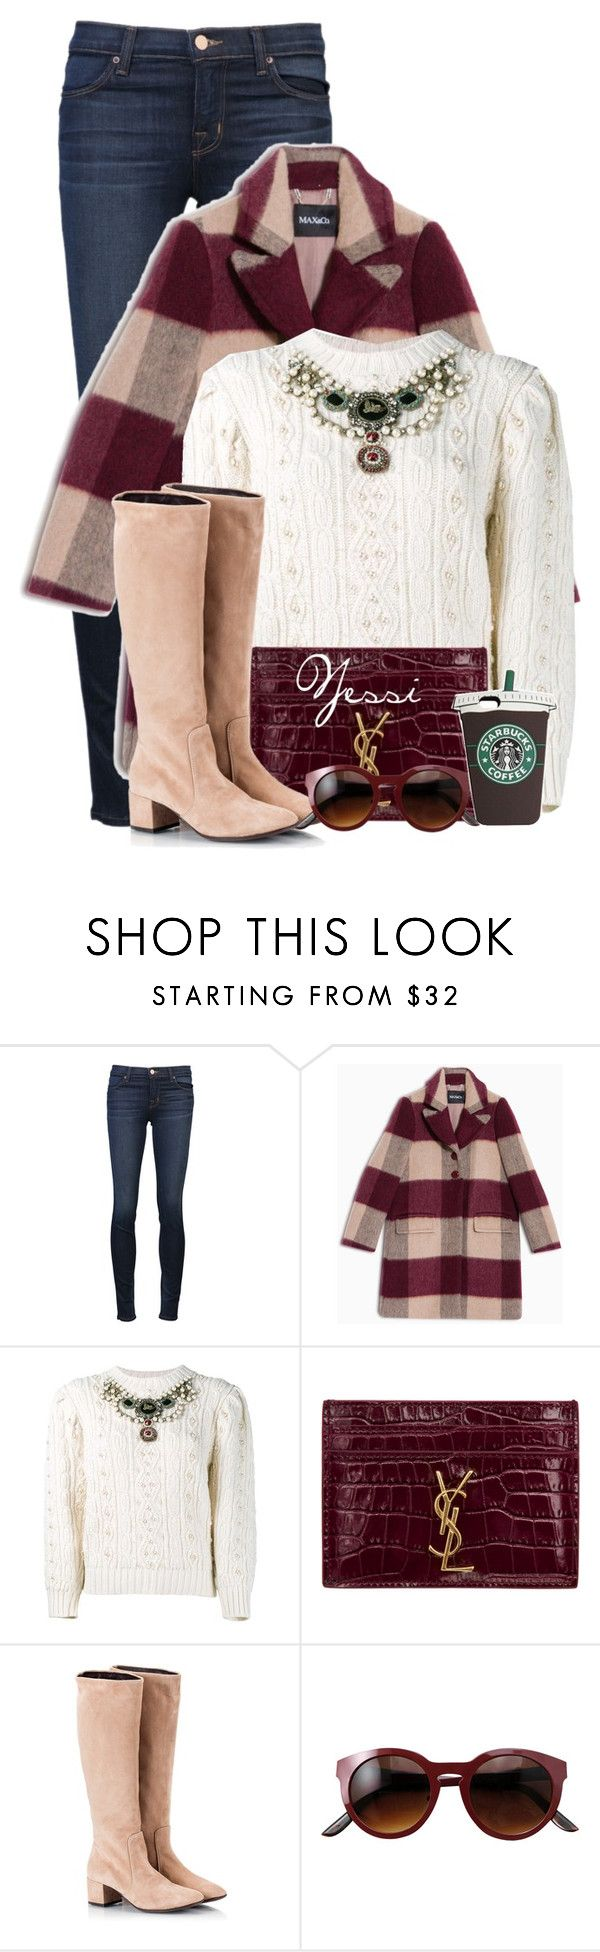 """~  Embellished Sweater  ~"" by pretty-fashion-designs ❤ liked on Polyvore featuring J Brand, Max&Co., Gucci, Yves Saint Laurent and Attilio Giusti Leombruni"